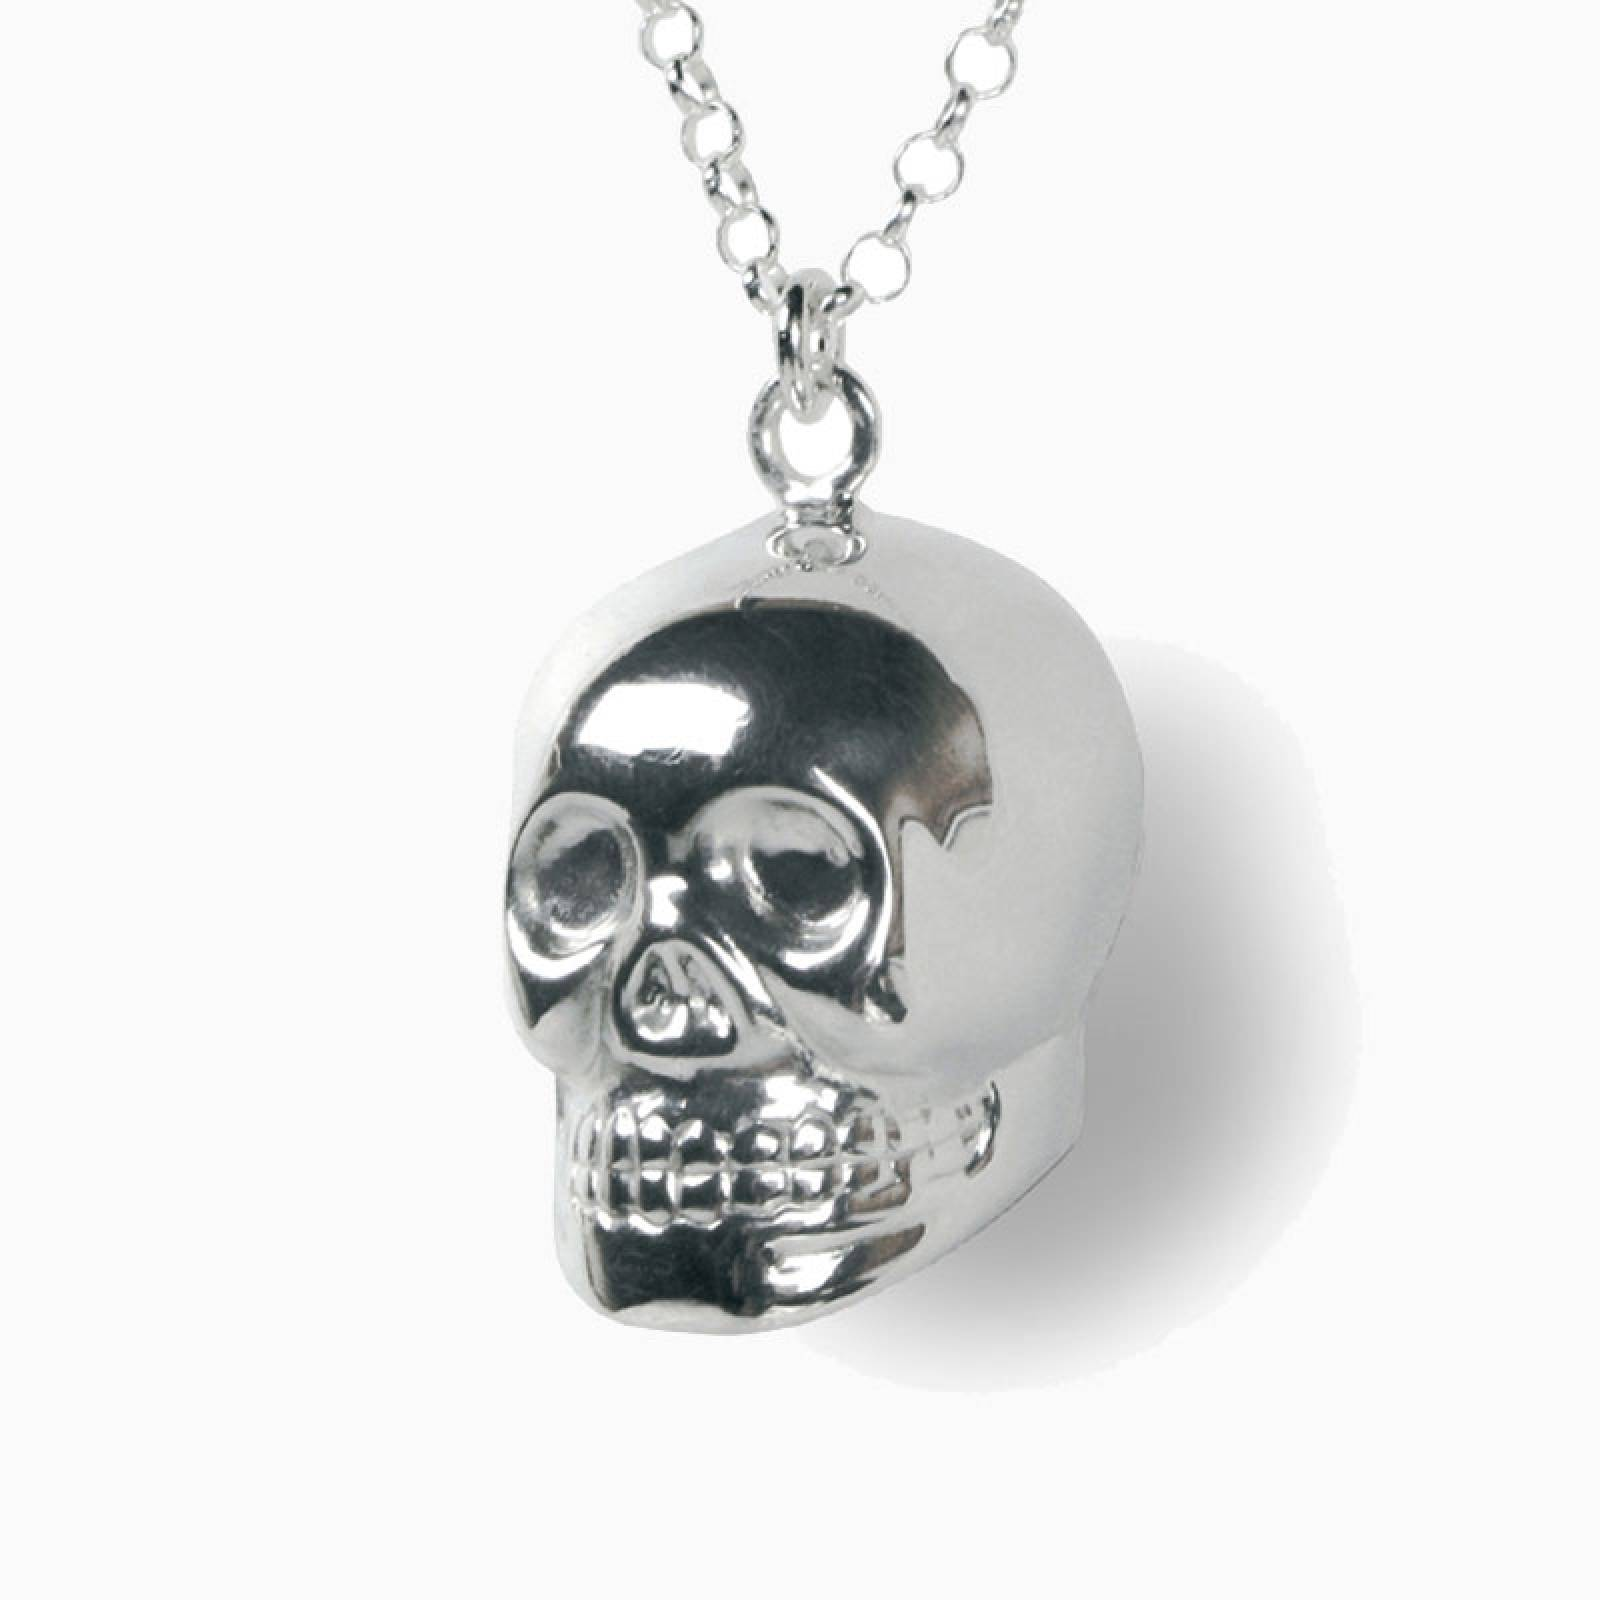 Chiming Silver Skull Necklace thumbnails